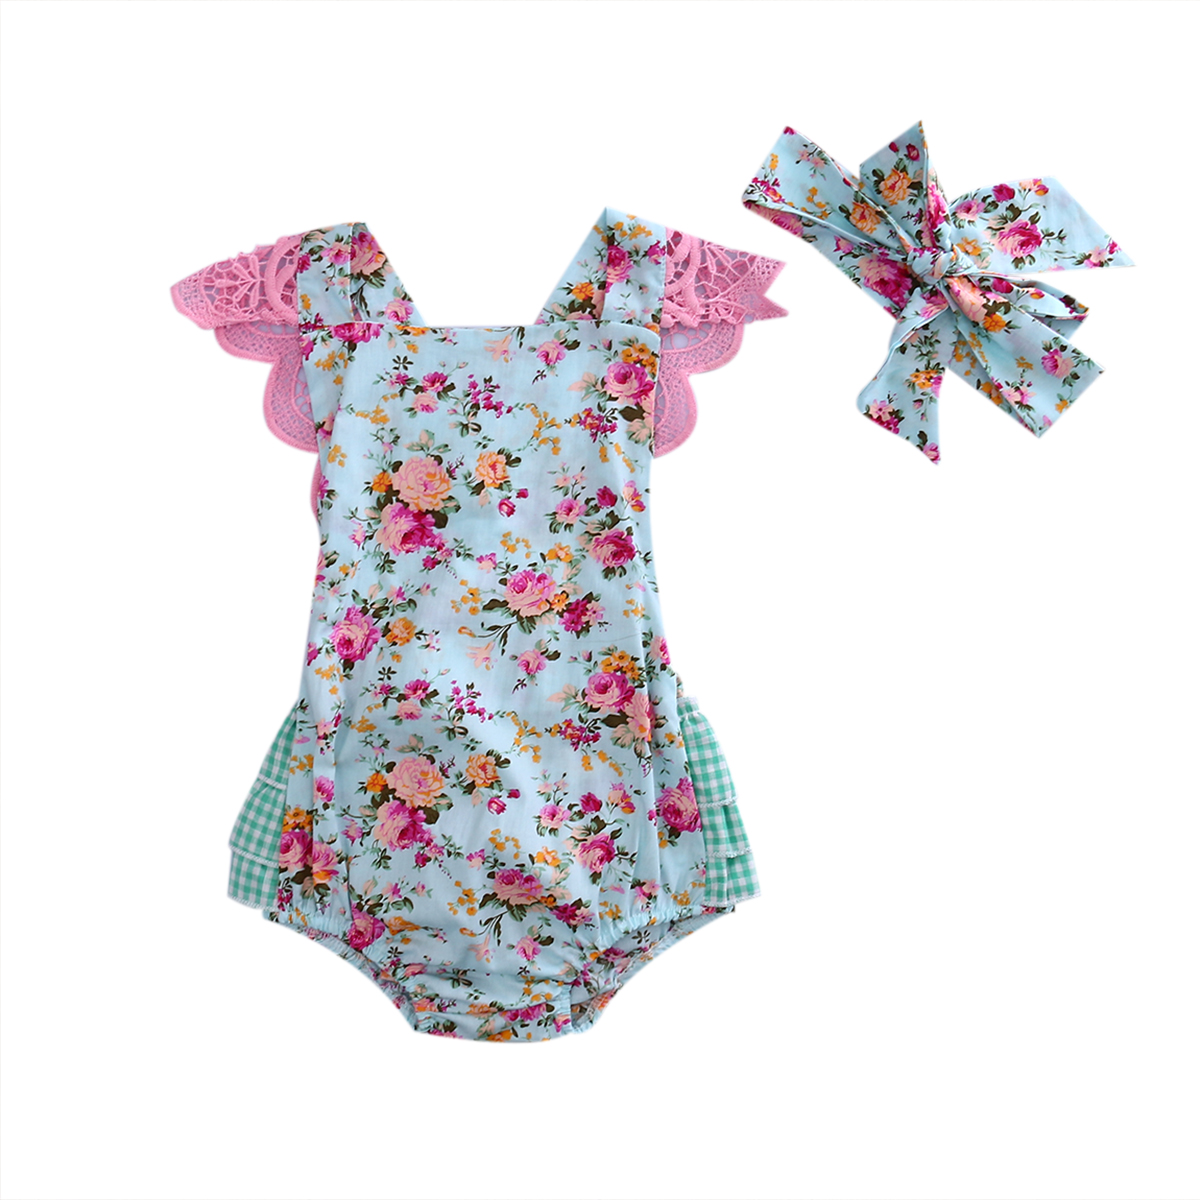 Newborn Infant Kids Baby Girls Lace Floral Romper Jumpsuit Playsuit Outfits Summer Baby Girl Clothing Onesie Handband 2pcs infant baby girls romper lace floral sleeveless belt romper jumpsuit playsuit one piece outfit summer newborn baby girl clothes